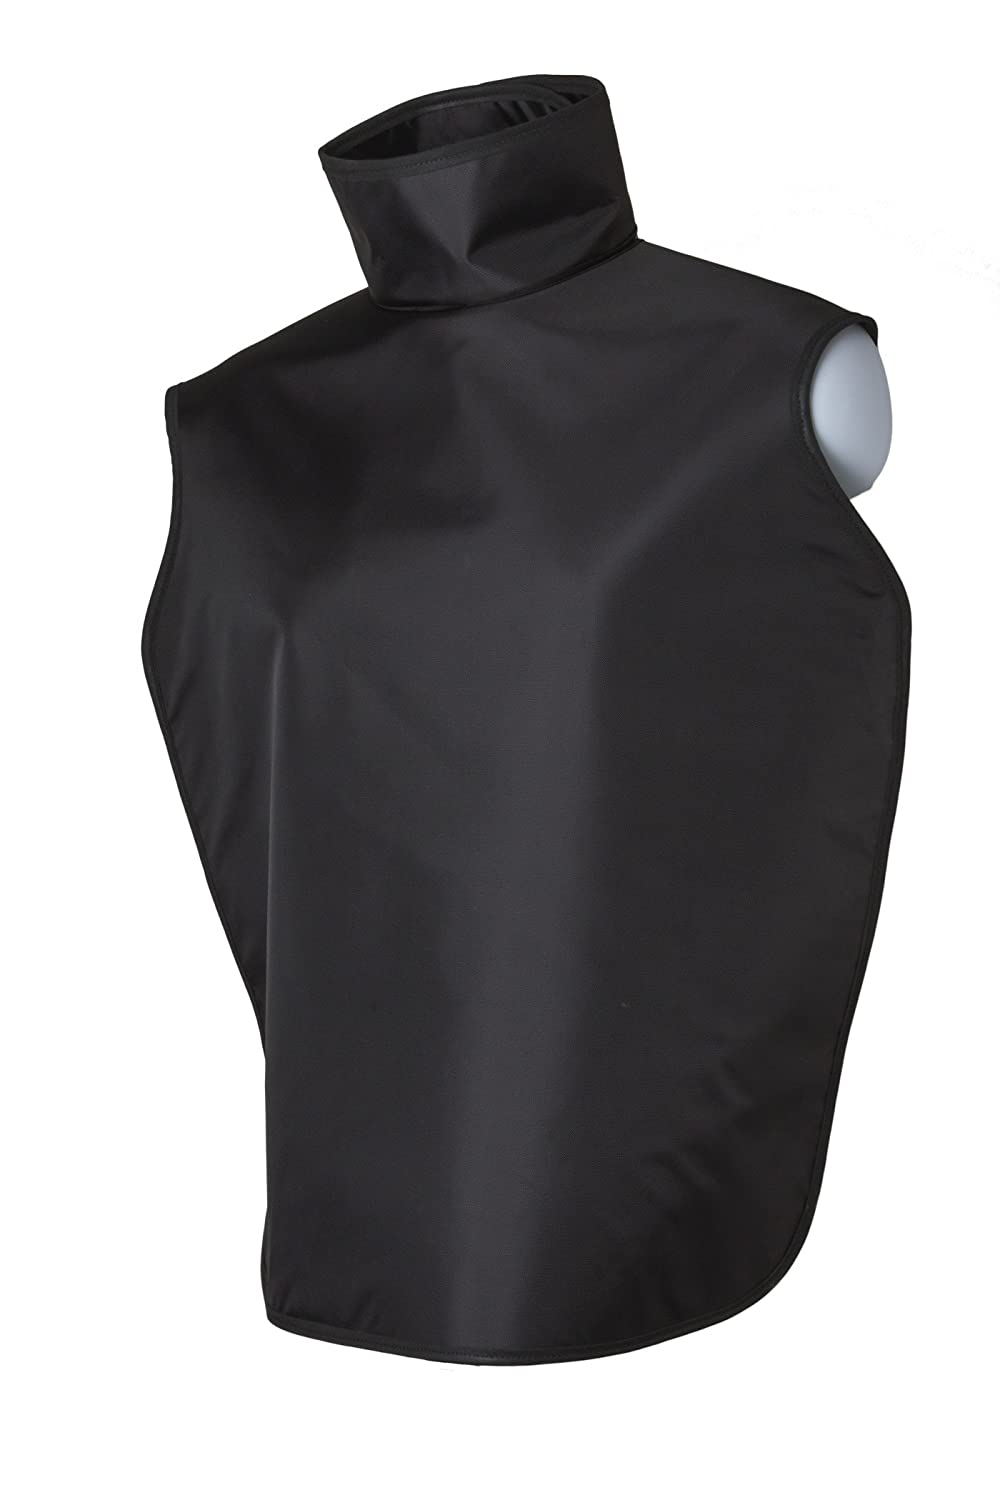 Dental Radiation Lead Apron with Collar and Hanging Loops - Lightweight - Adult: Industrial & Scientific